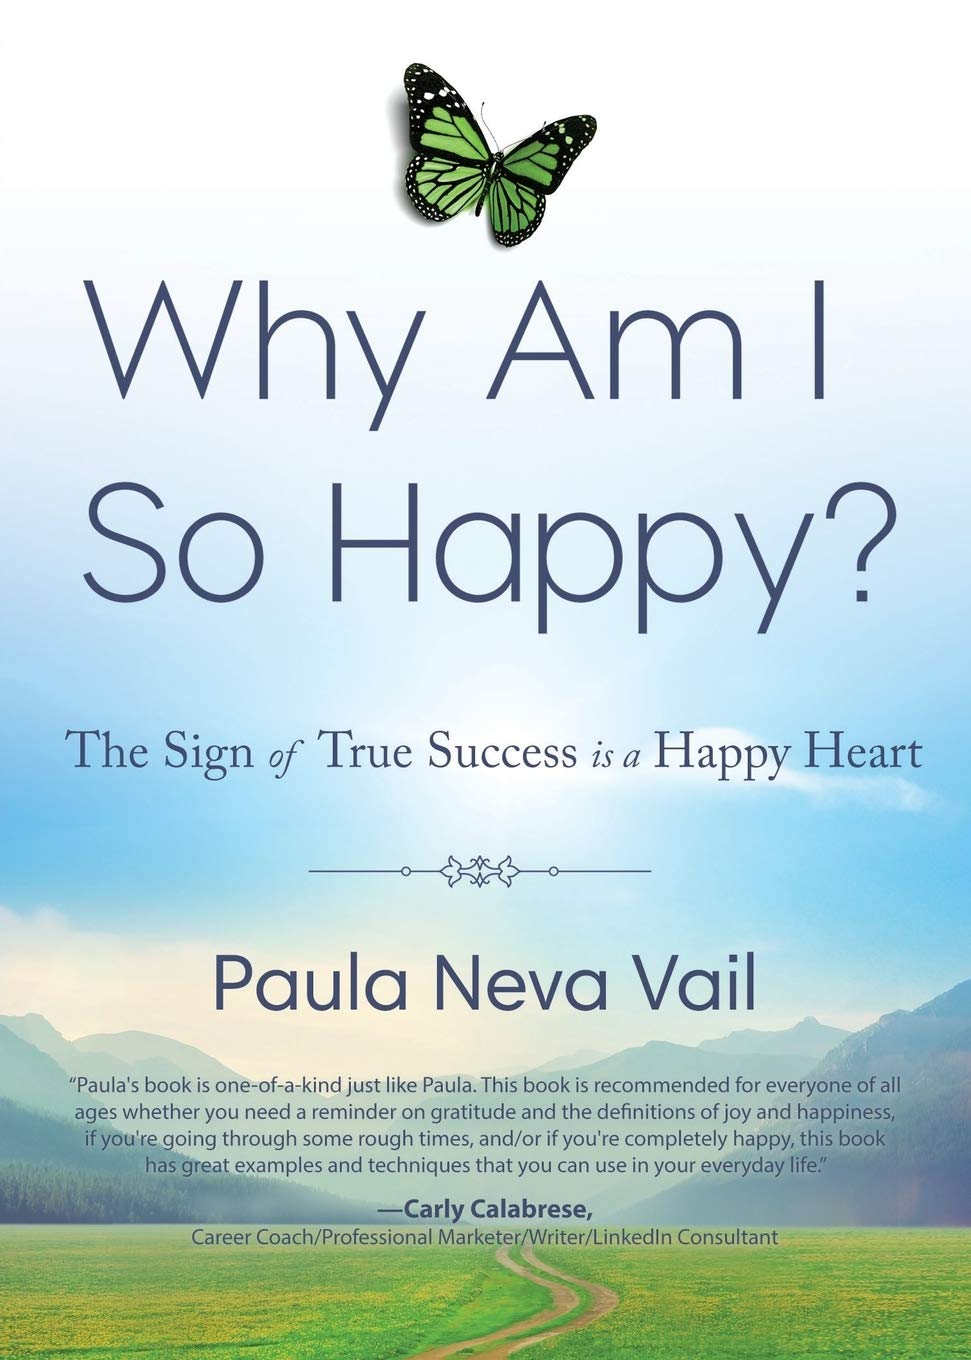 Why am I so Happy? - Authors Place Press